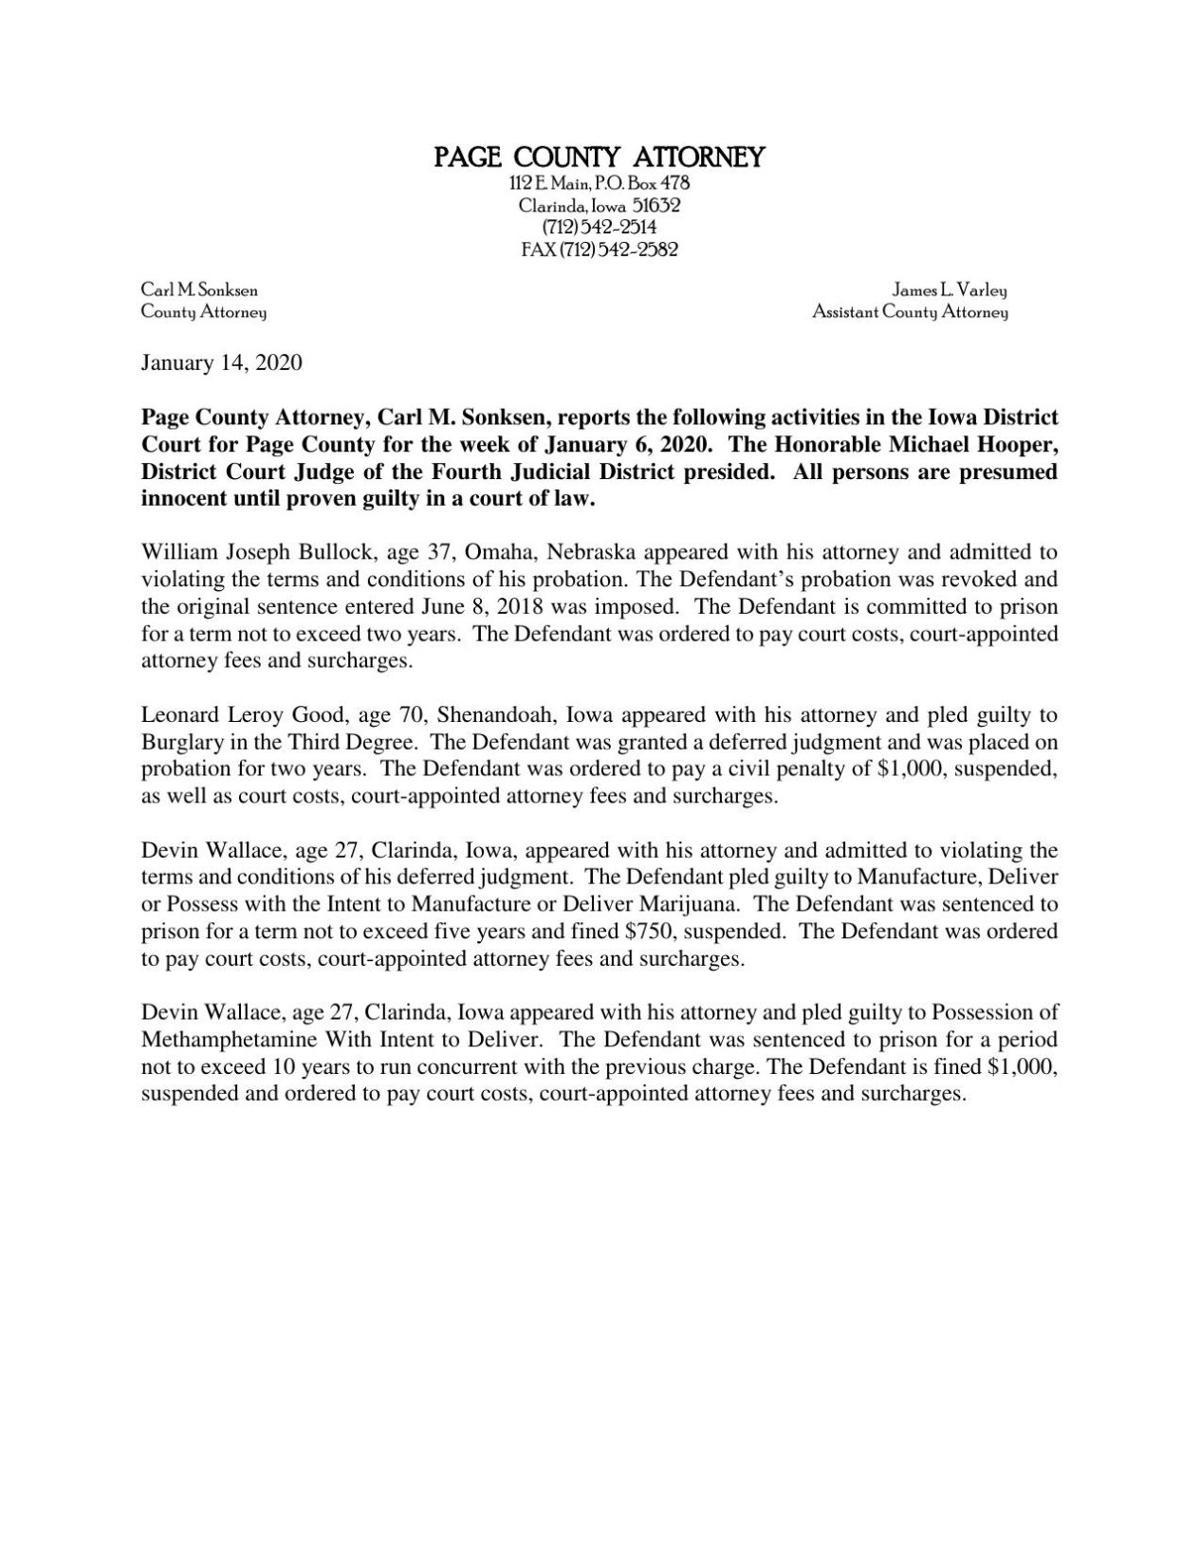 Page County Attorney's Report 01/15/20